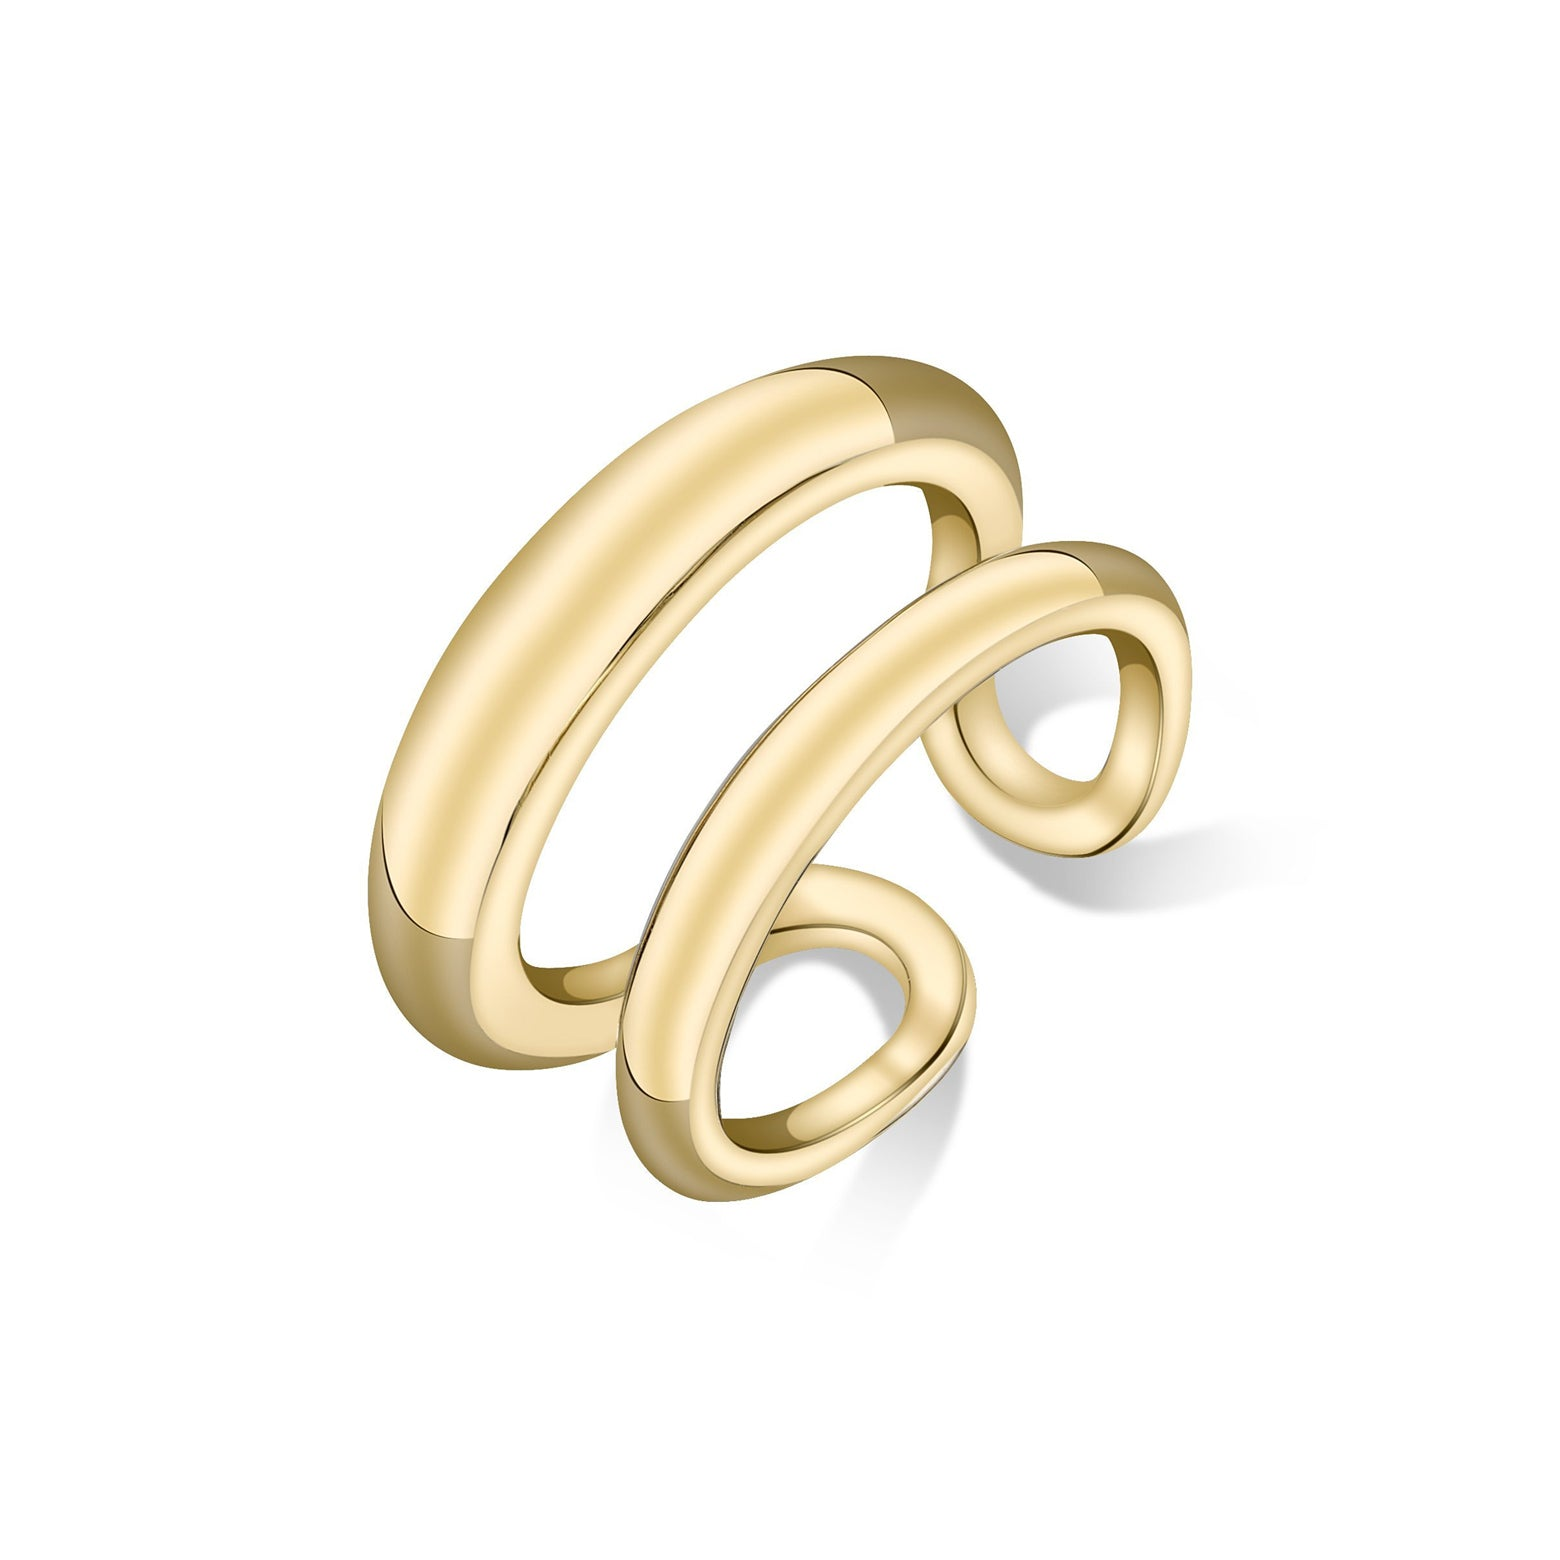 Twin Tusk Ring - Gabriela Artigas